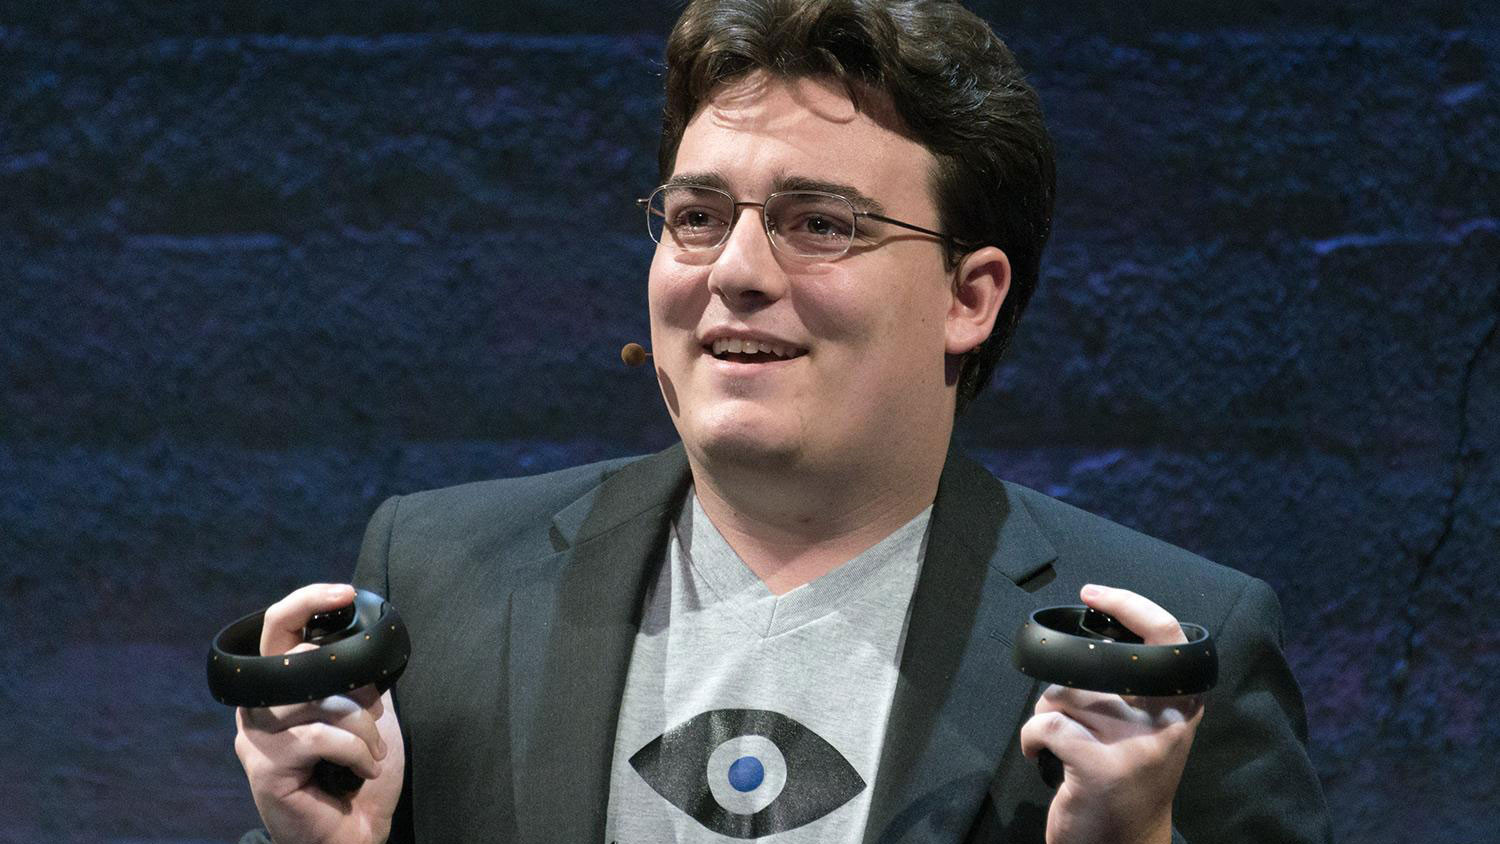 Virtual reality pioneer Palmer Luckey departs Facebook in wake of controversies